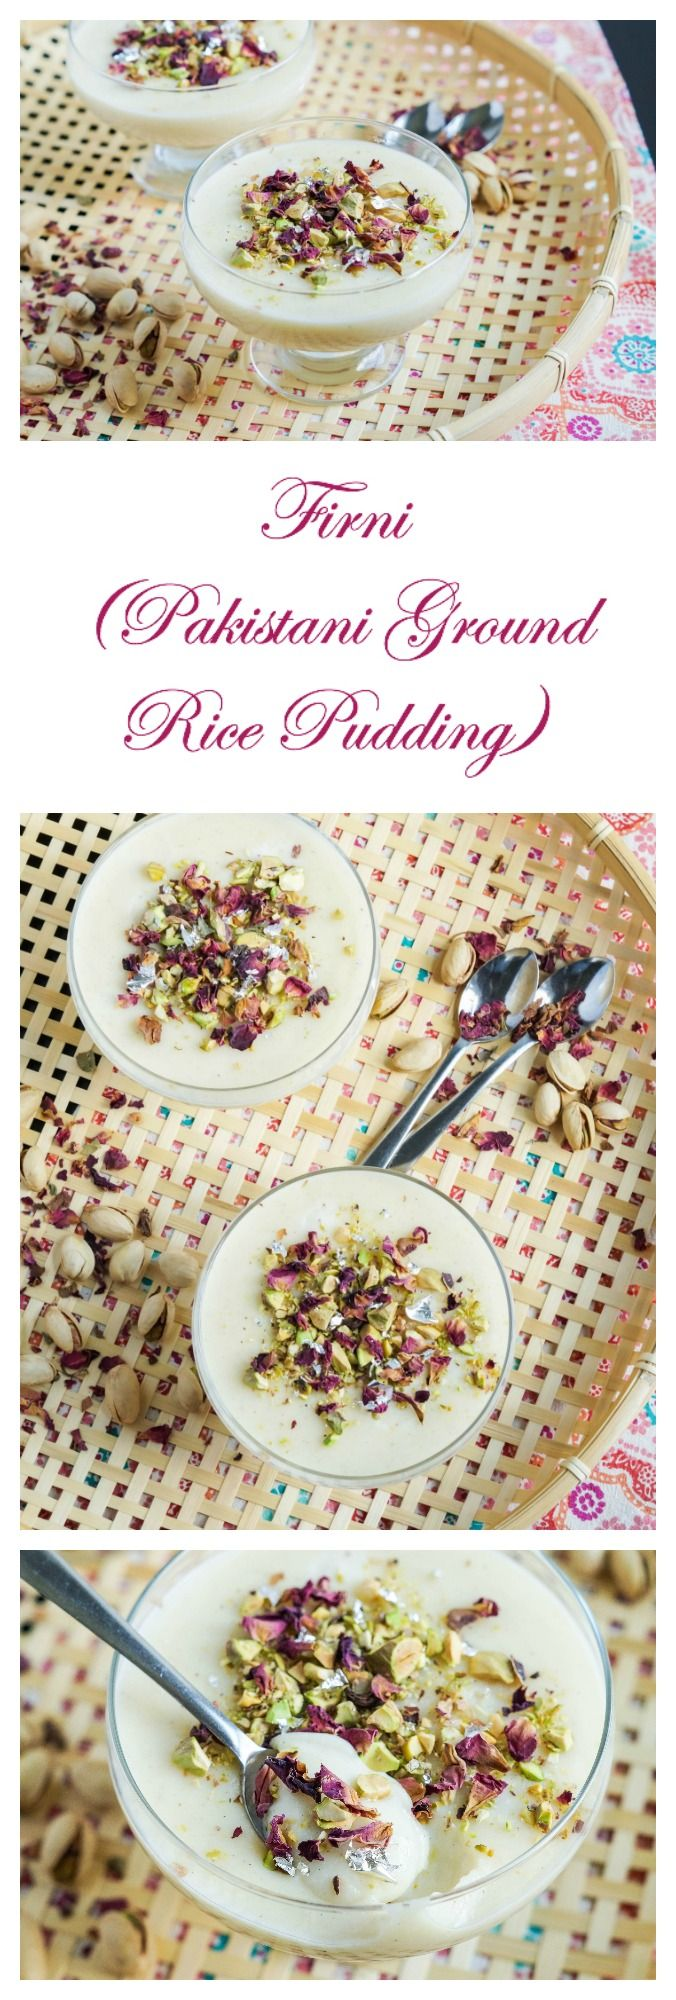 Firni (Pakistani Ground Rice Pudding)